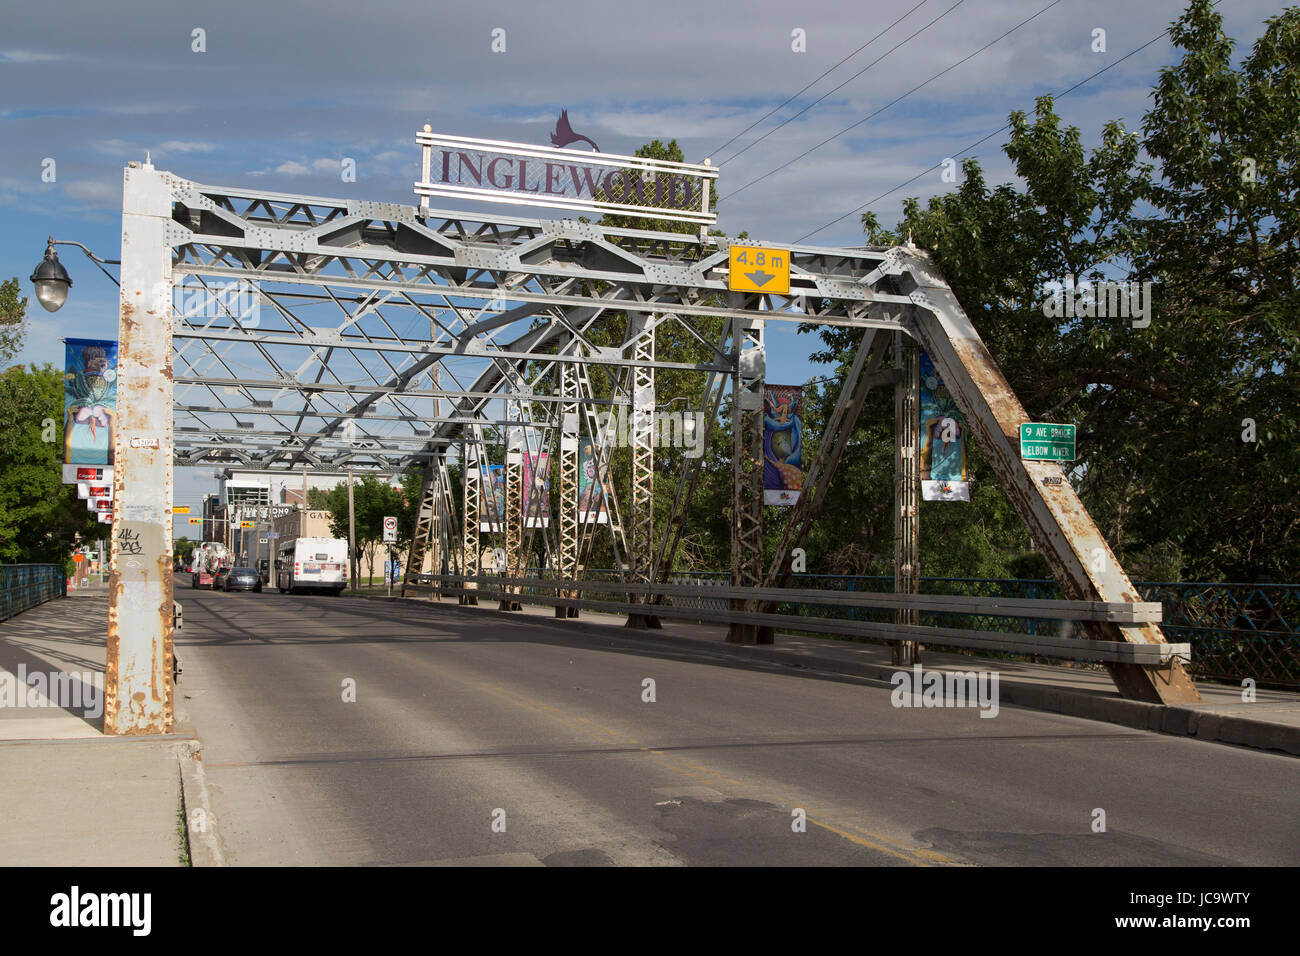 Bridge leading to the Inglewood district of Calgary, Canada. Inglewood is one of the oldest districts in Calgary - Stock Image